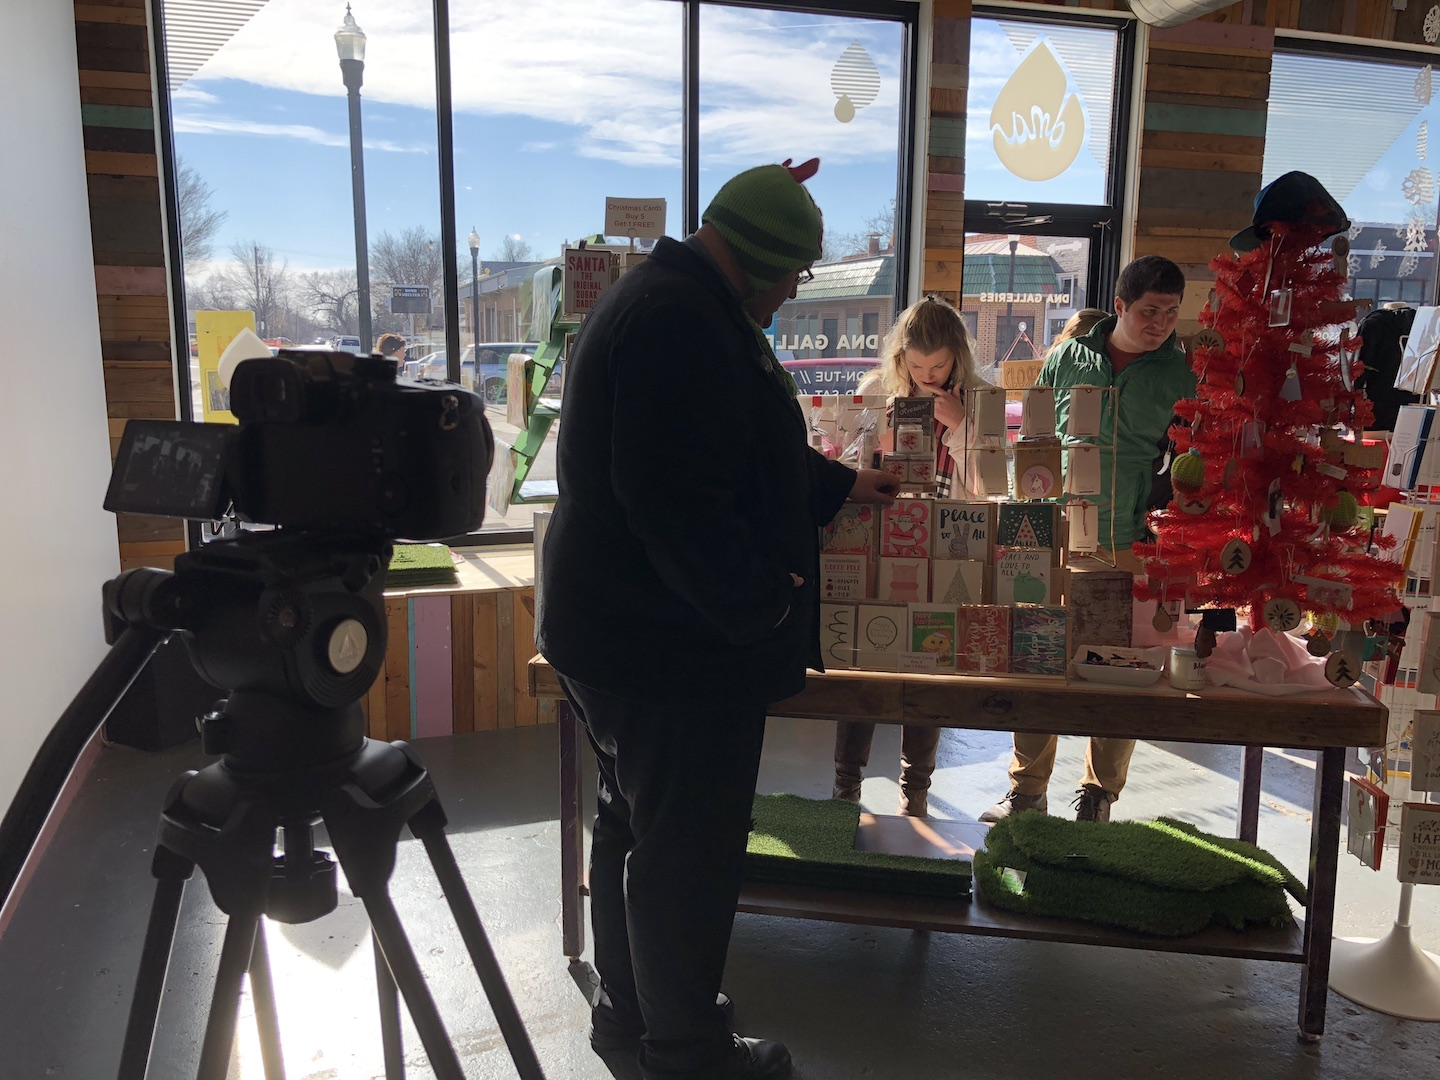 Behind the scenes of Holiday Cards at DNA Galleries - photo by Dennis Spielman